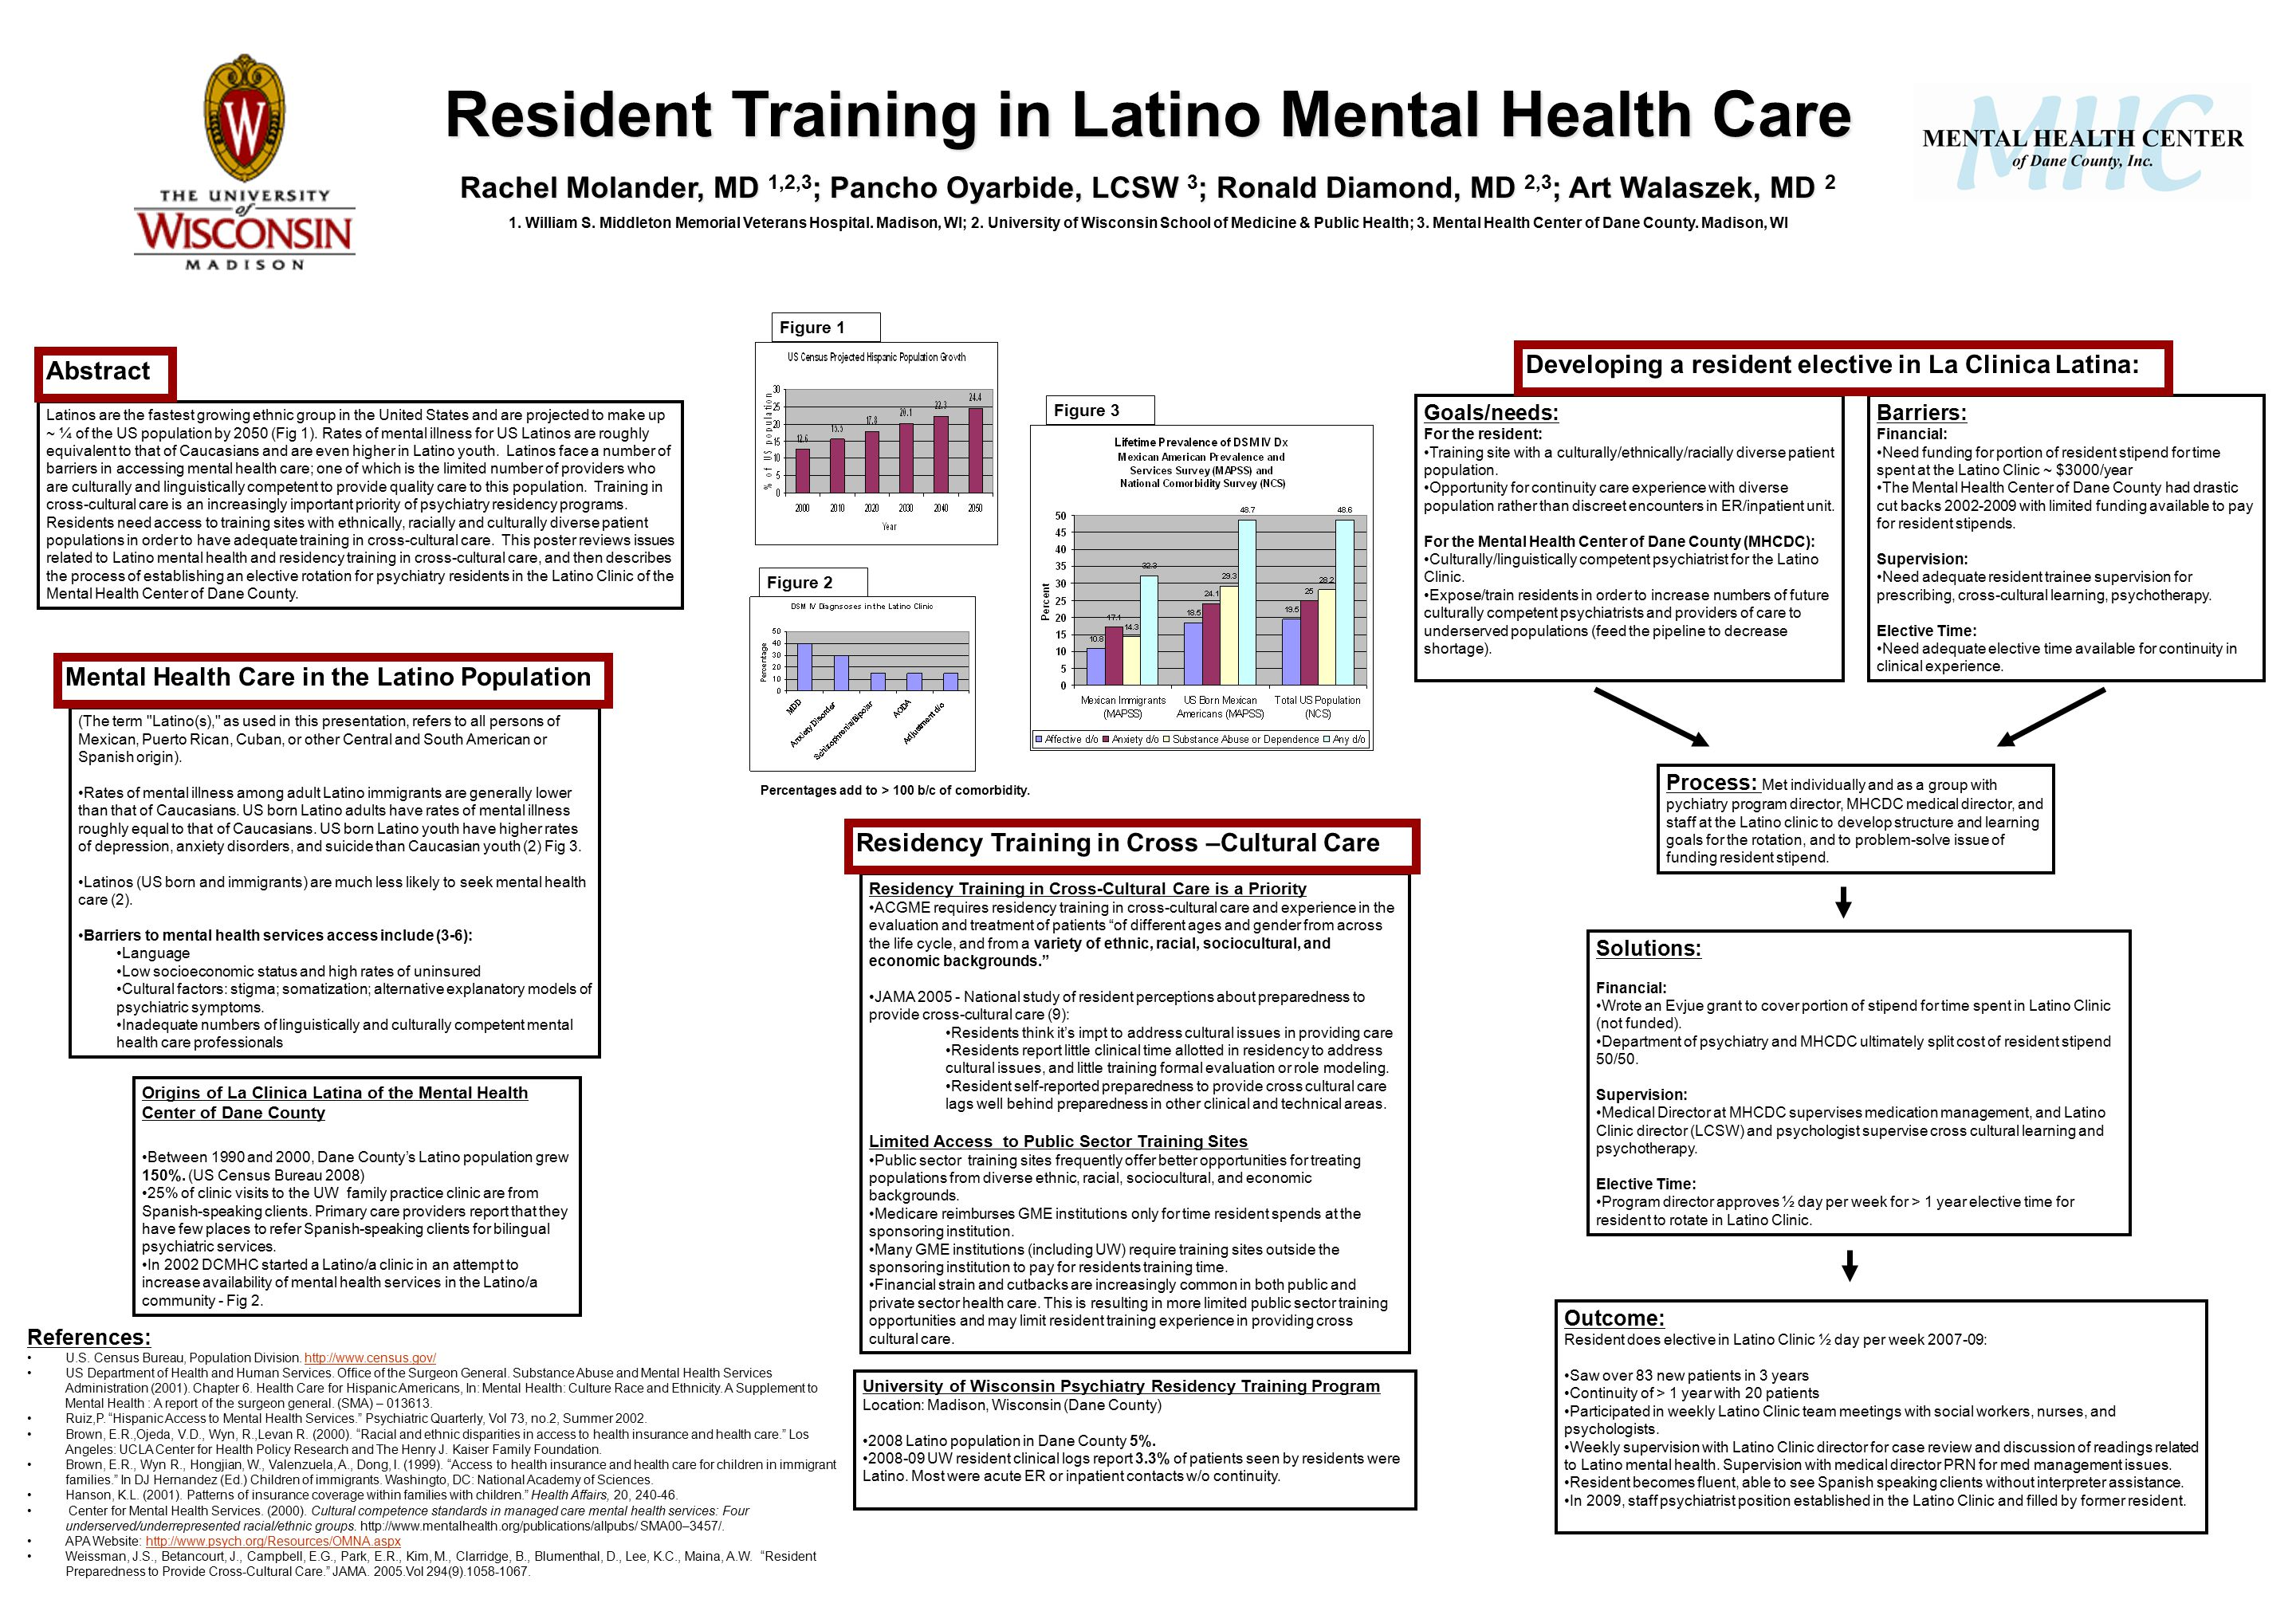 printed by www.postersession.com Resident Training in Latino Mental Health Care Rachel Molander, MD ; Pancho Oyarbide, LCSW ; Ronald Diamond, MD ; Art